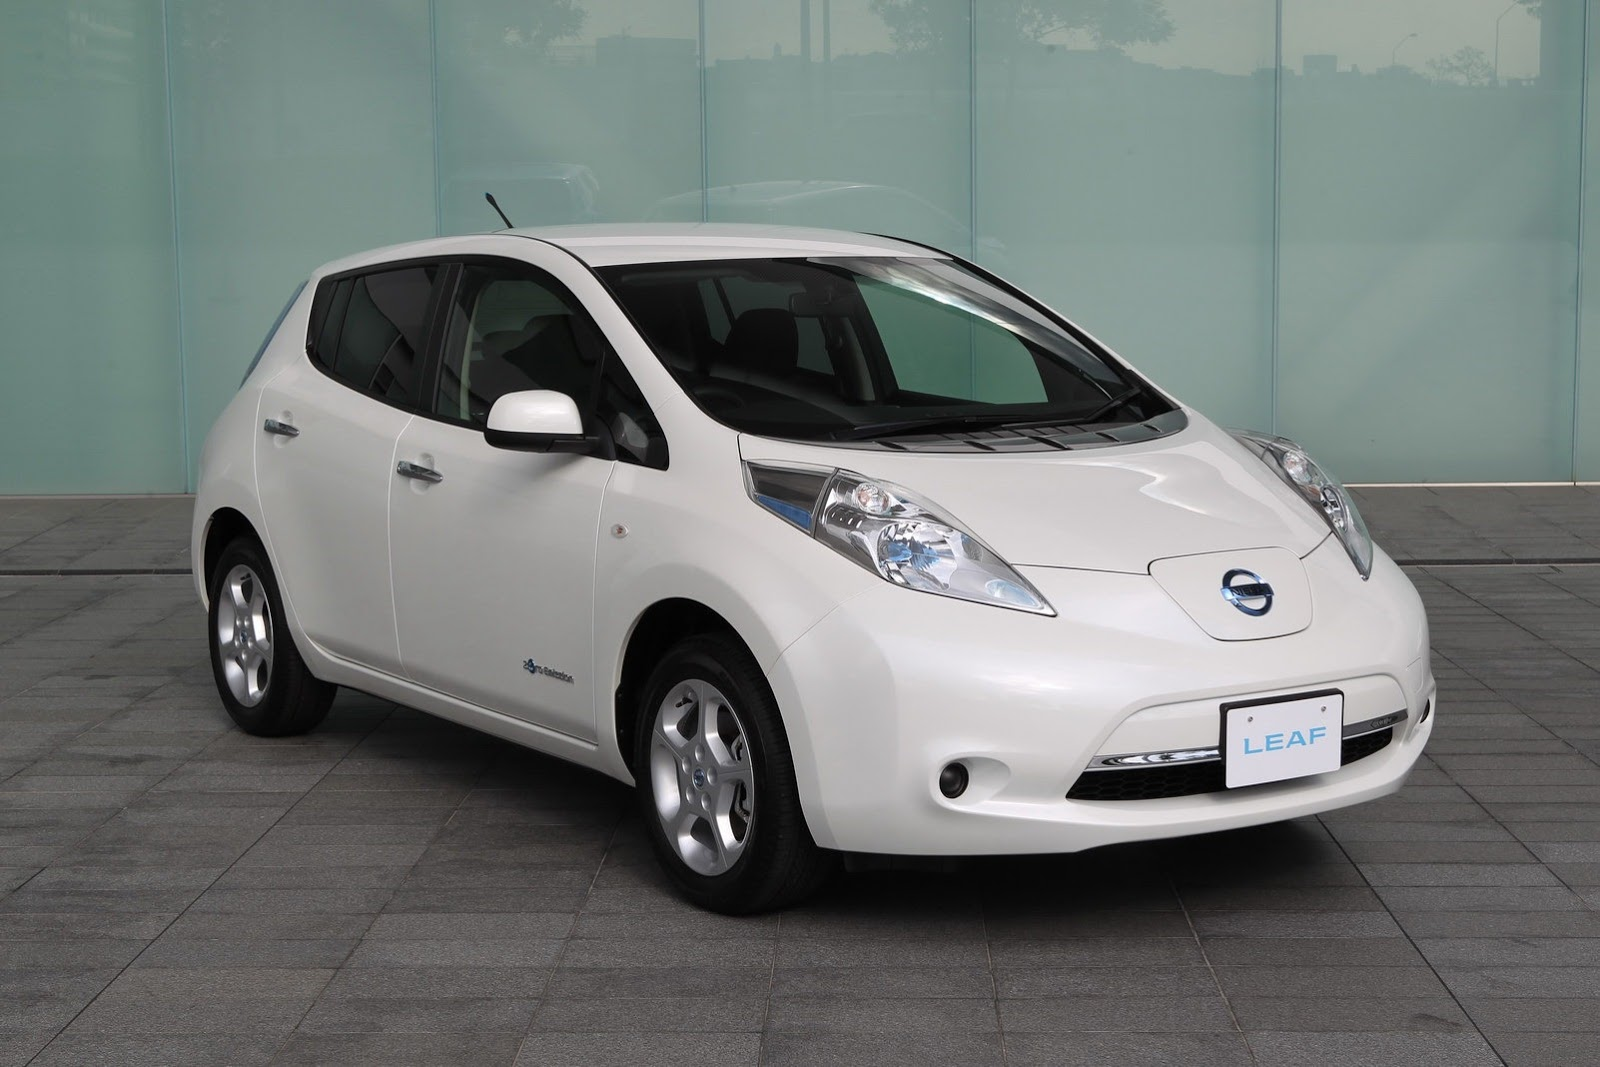 Latest Auto and Cars: 2013 Nissan Leaf is found a Latest Car